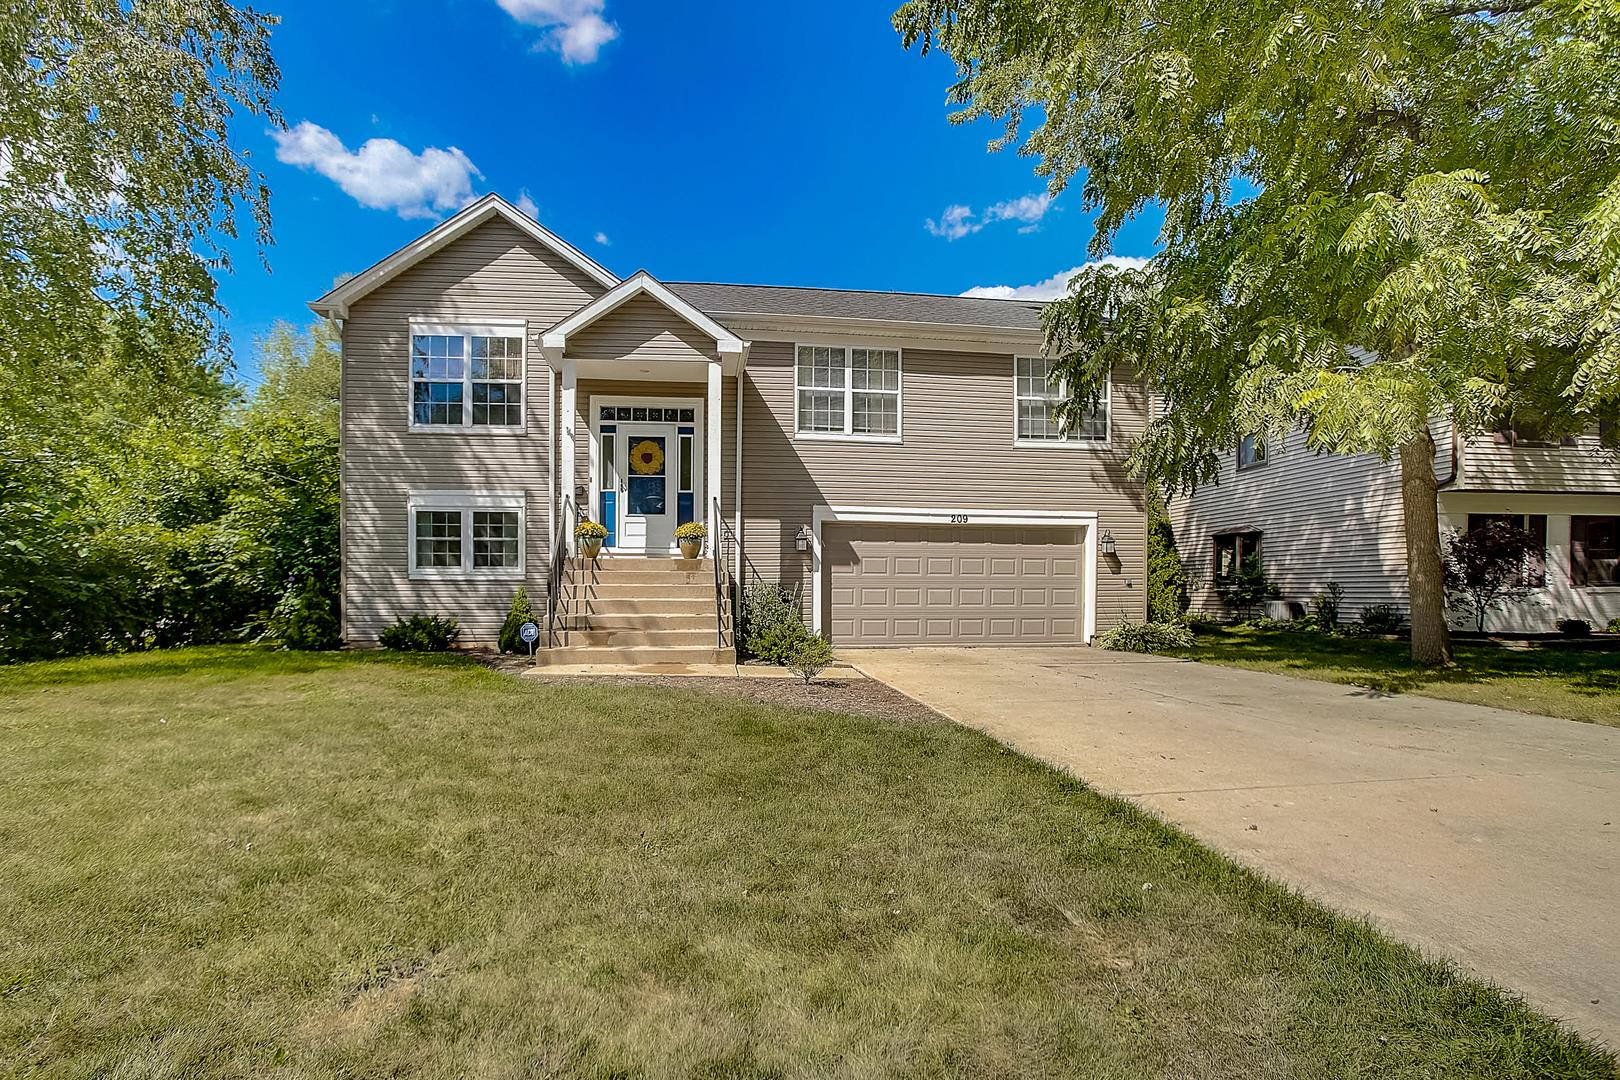 209 W Country Drive, Bartlett, IL 60103 - #: 10820311